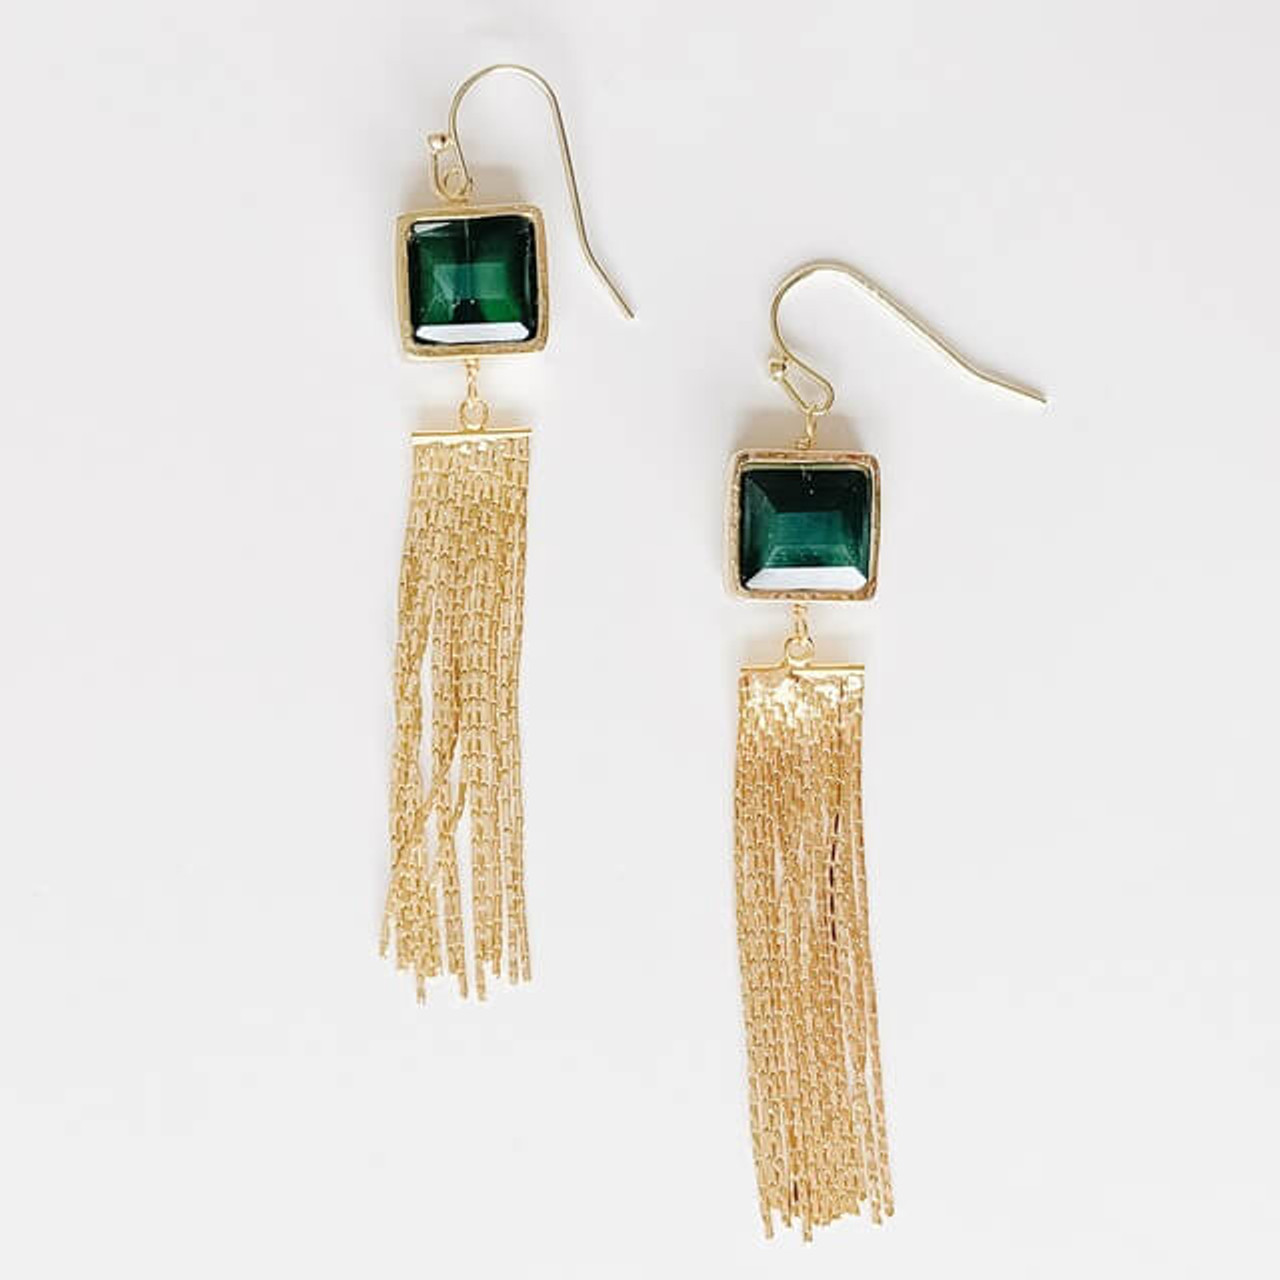 Gold metal tassel earrings with green square stone, Nickel and lead free.